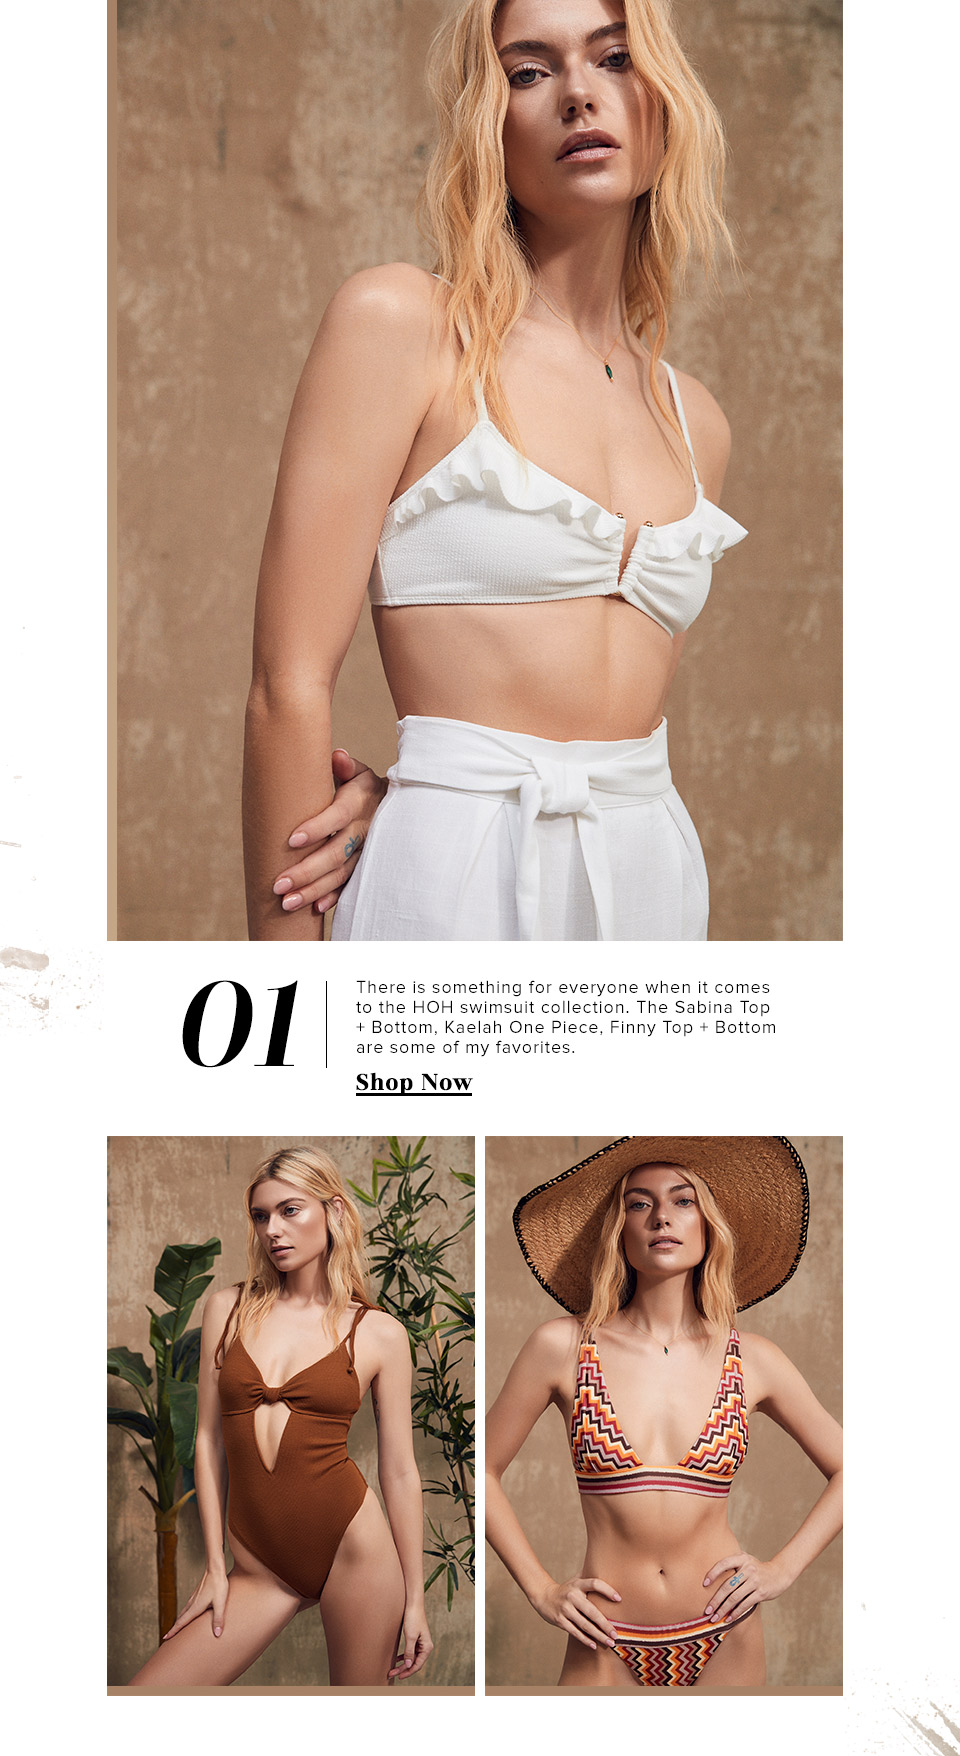 1. There is something for everyone when it comes to the HOH swimsuit collection. The Sabina Top + Bottom, Kaelah One Piece, Finny Top + Bottom are some of my favorites.  SHOP NOW.